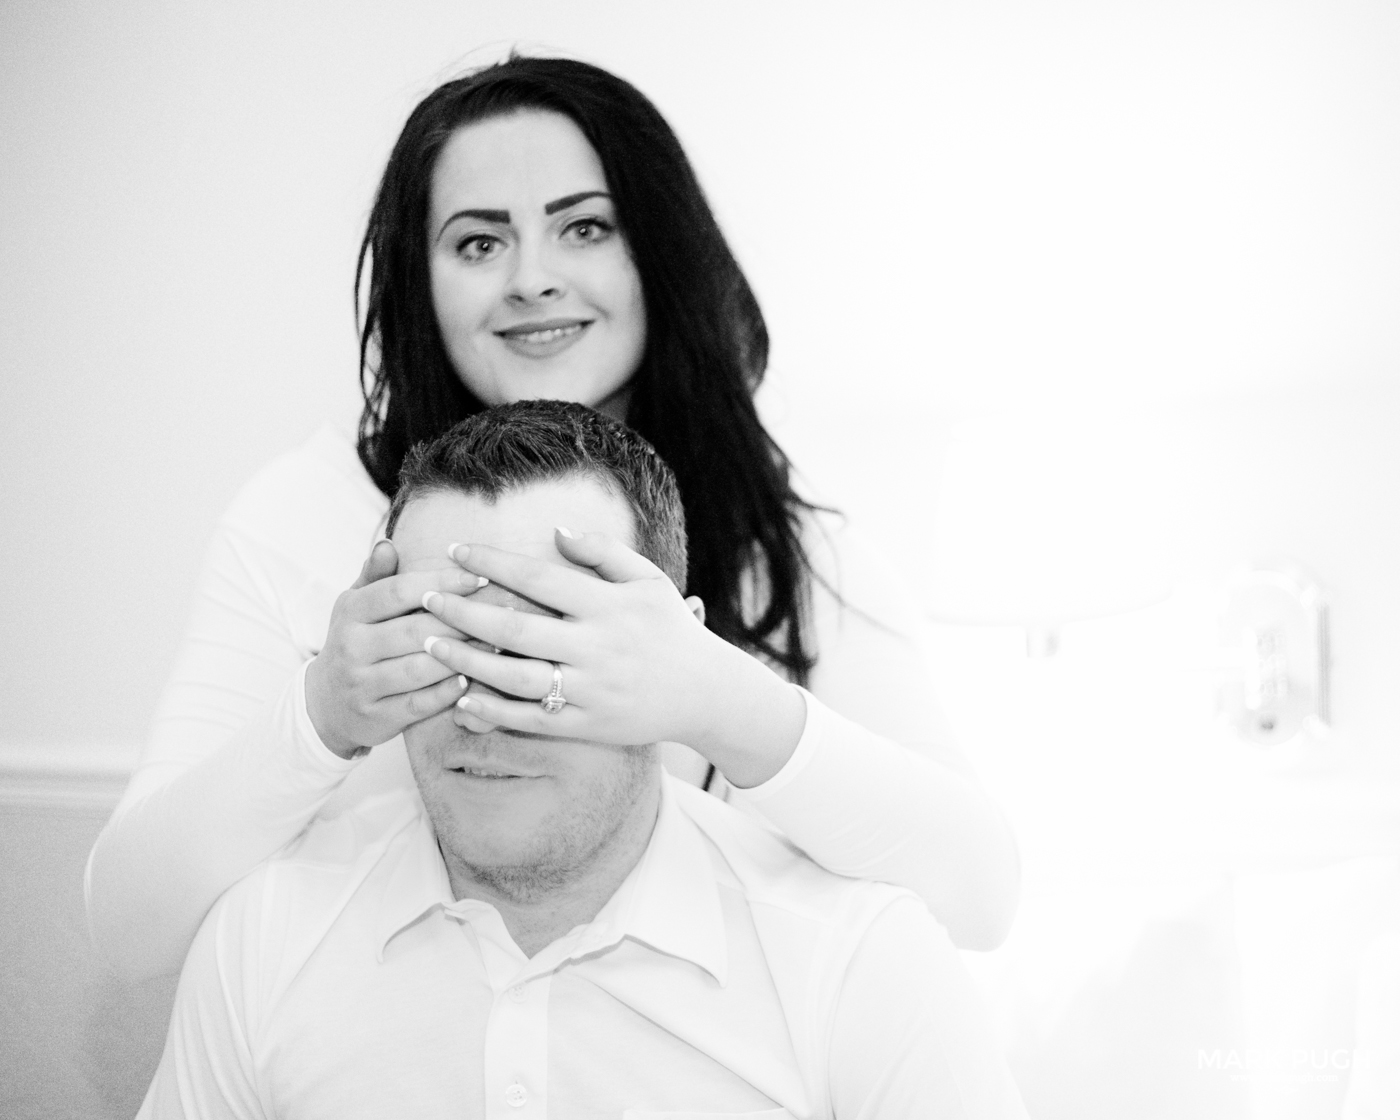 043 - Louise and Paul - preWED love session at the seaside - Photography by www.markpugh.com.JPG